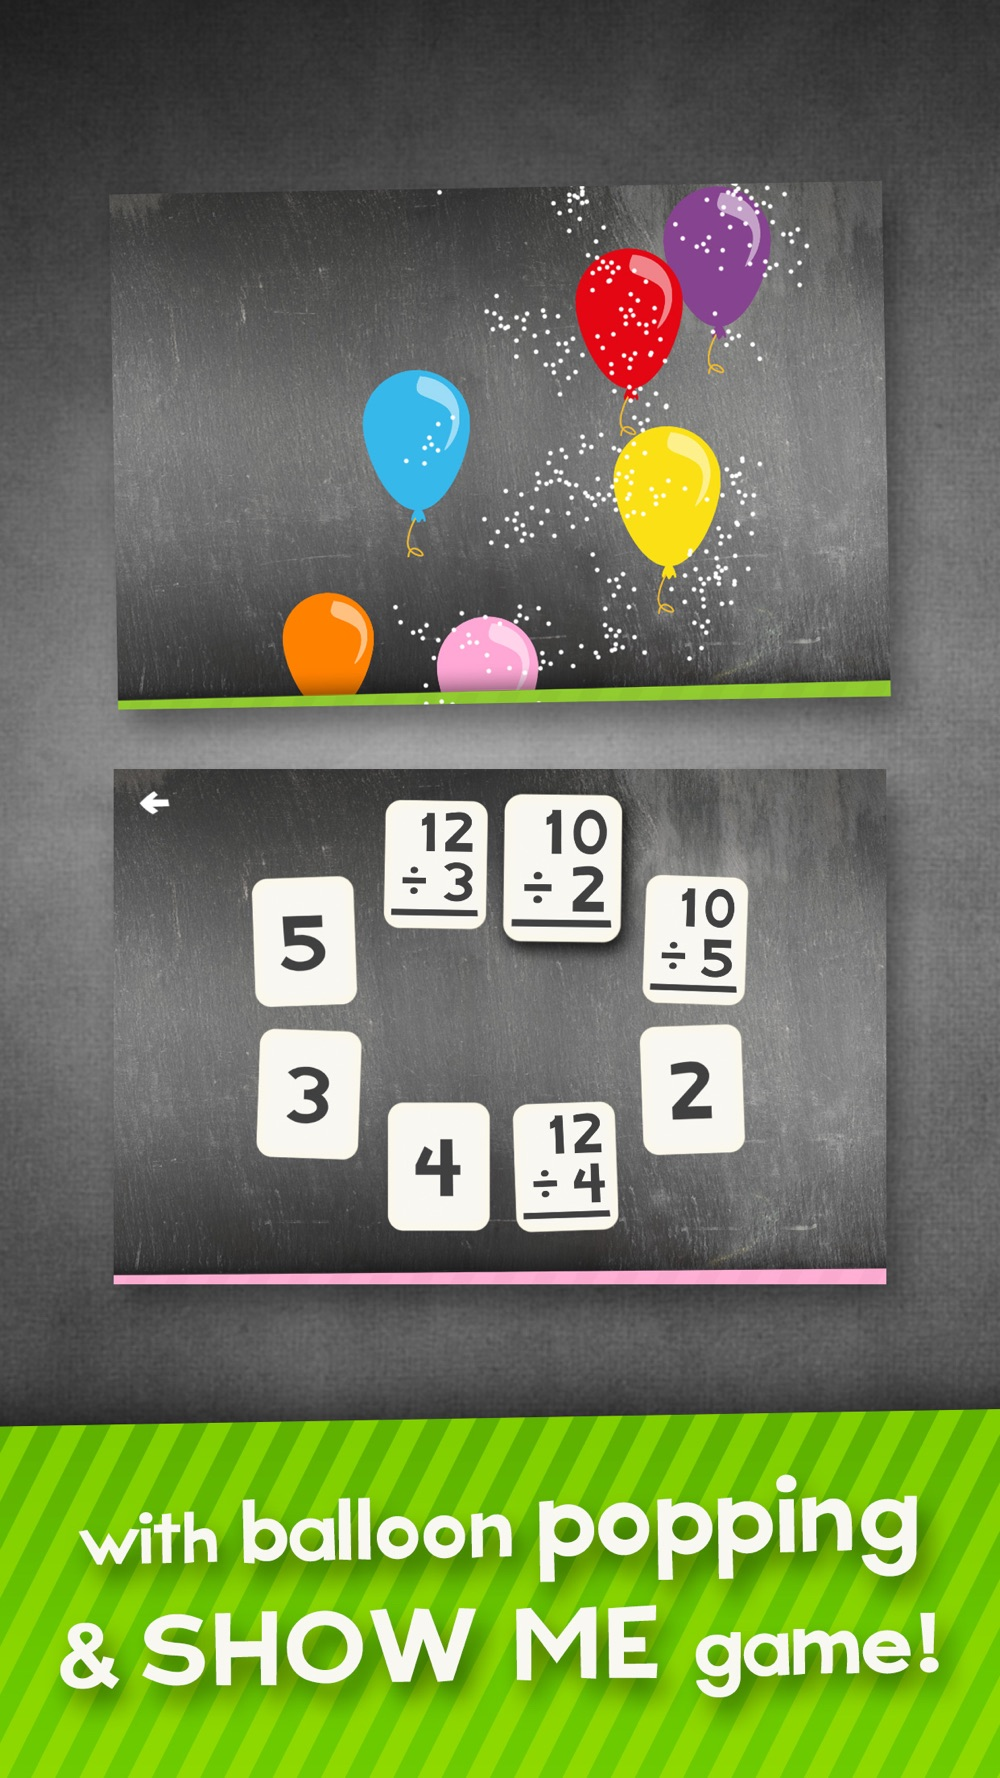 Division Flashcard Match Games for Kids in 2nd, 3rd and 4th Grade Learning Flash Cards Free hack tool